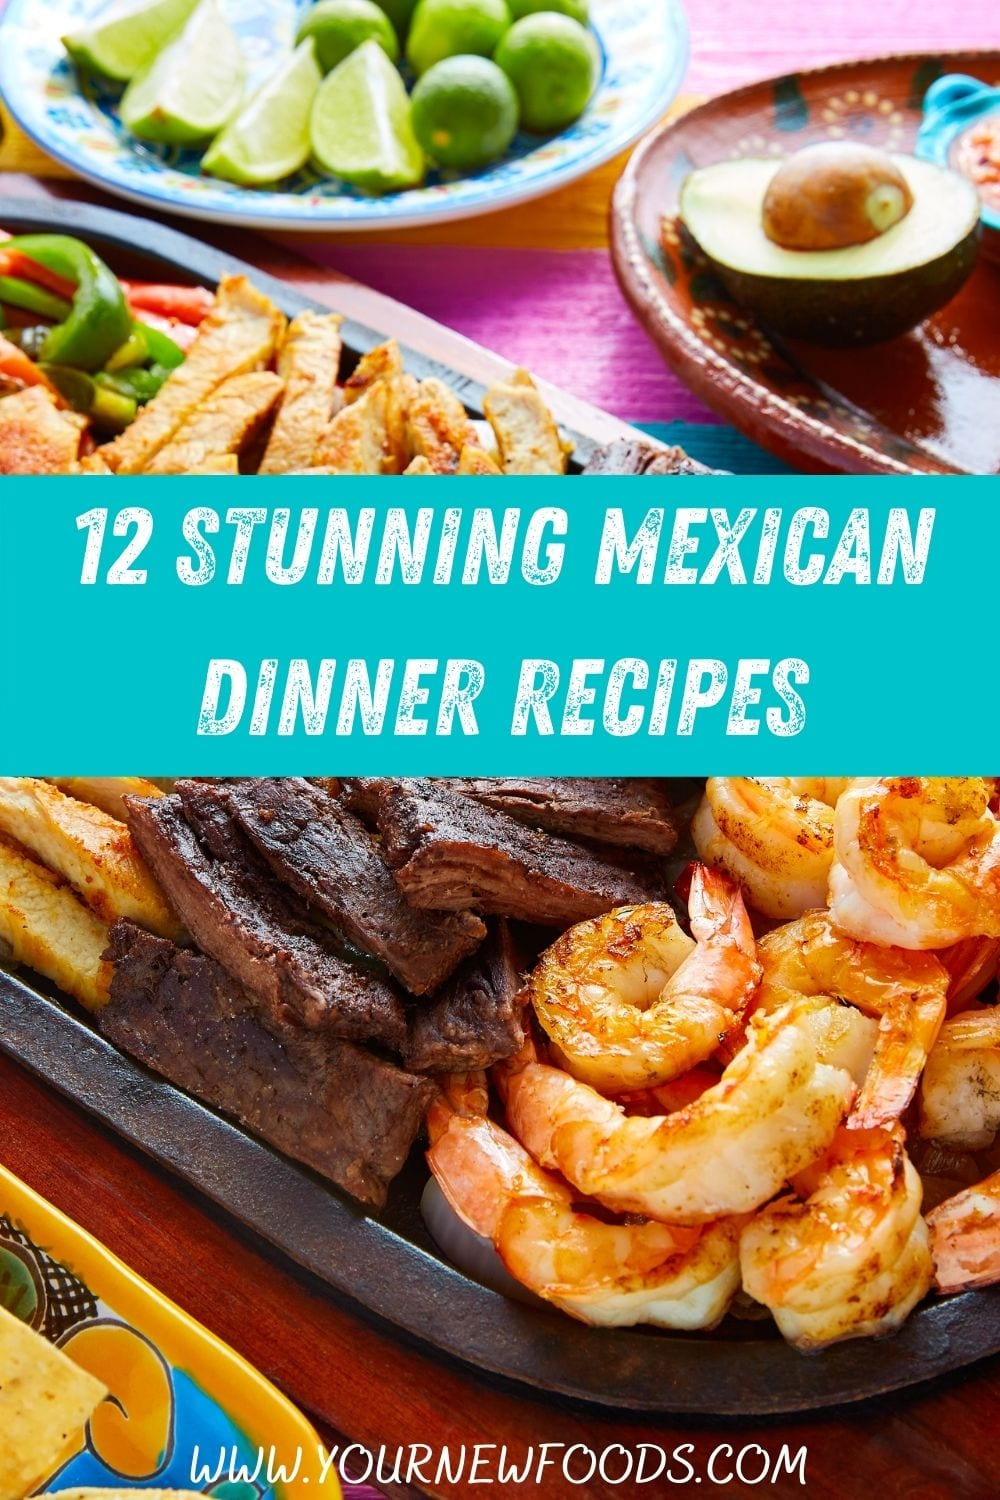 Mexican Dinner Recipes